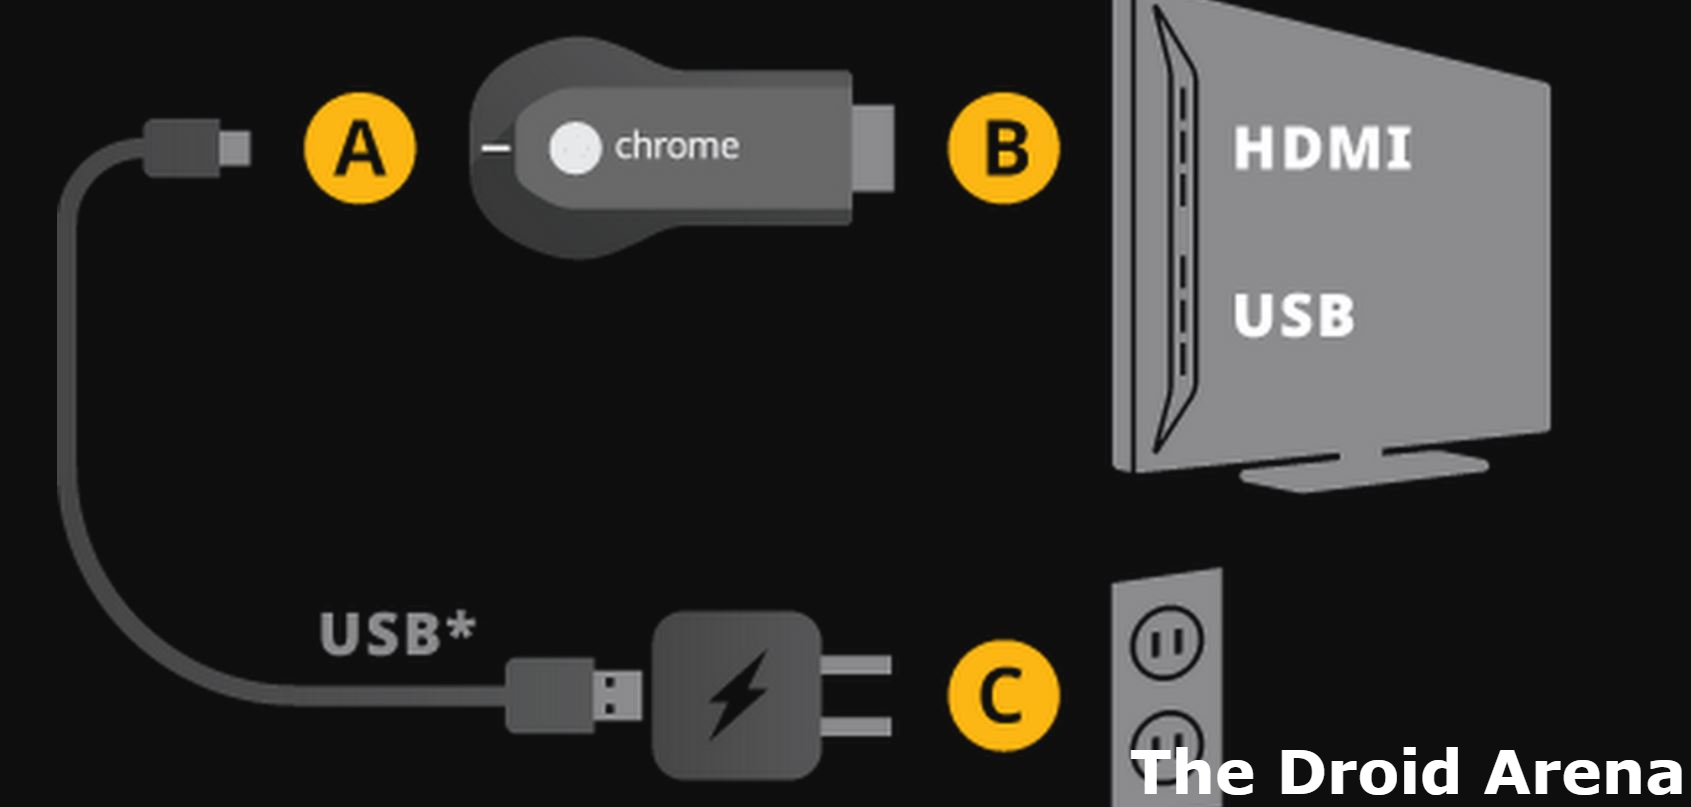 How to setup chromecast on android tv